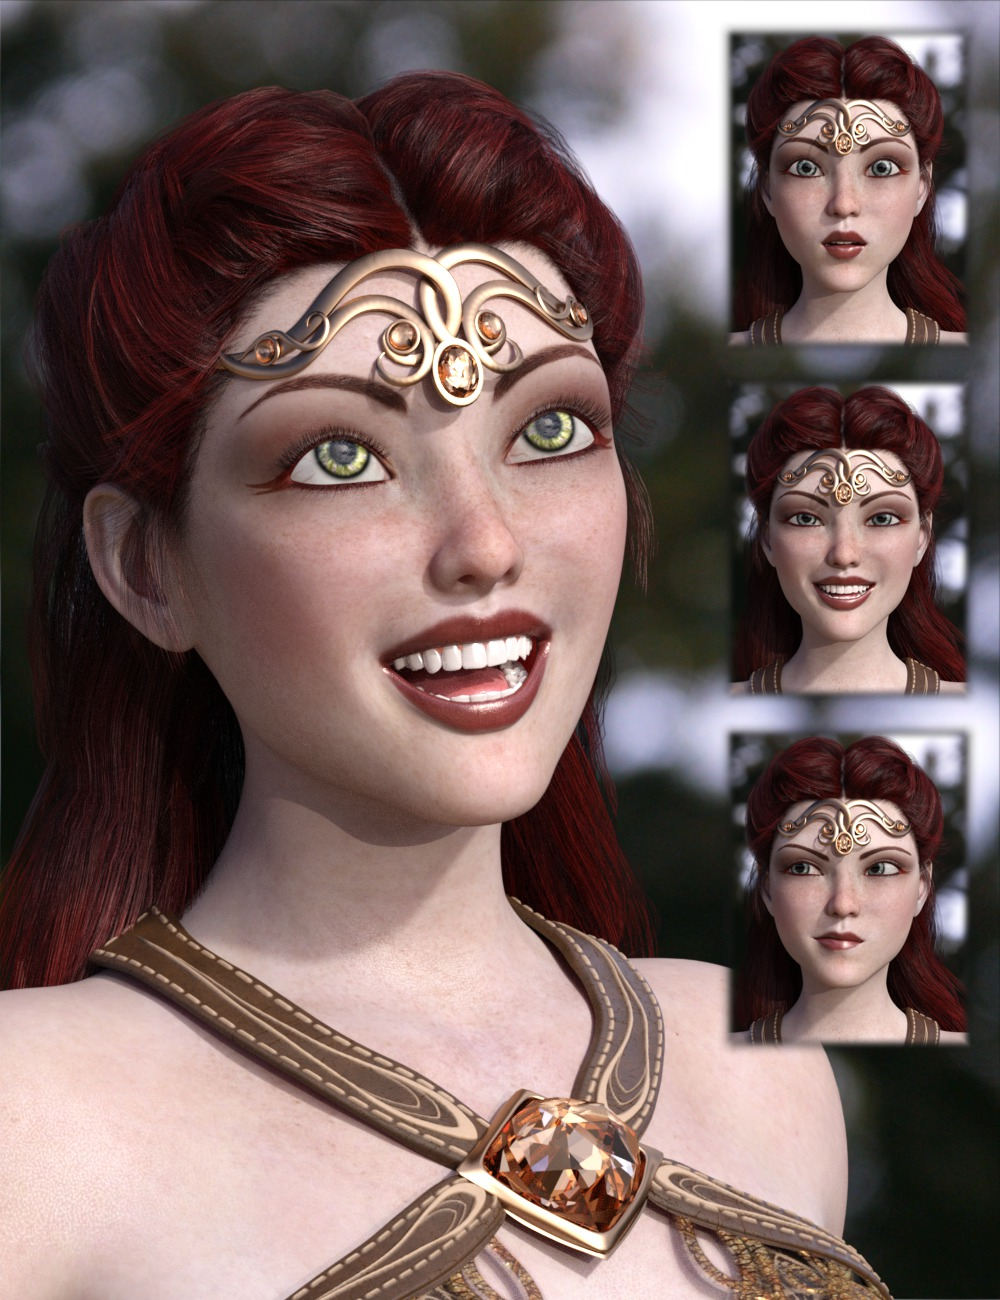 Celinette Expressions and Smile Morphs for Genesis 3 Female by: 3D-GHDesign, 3D Models by Daz 3D